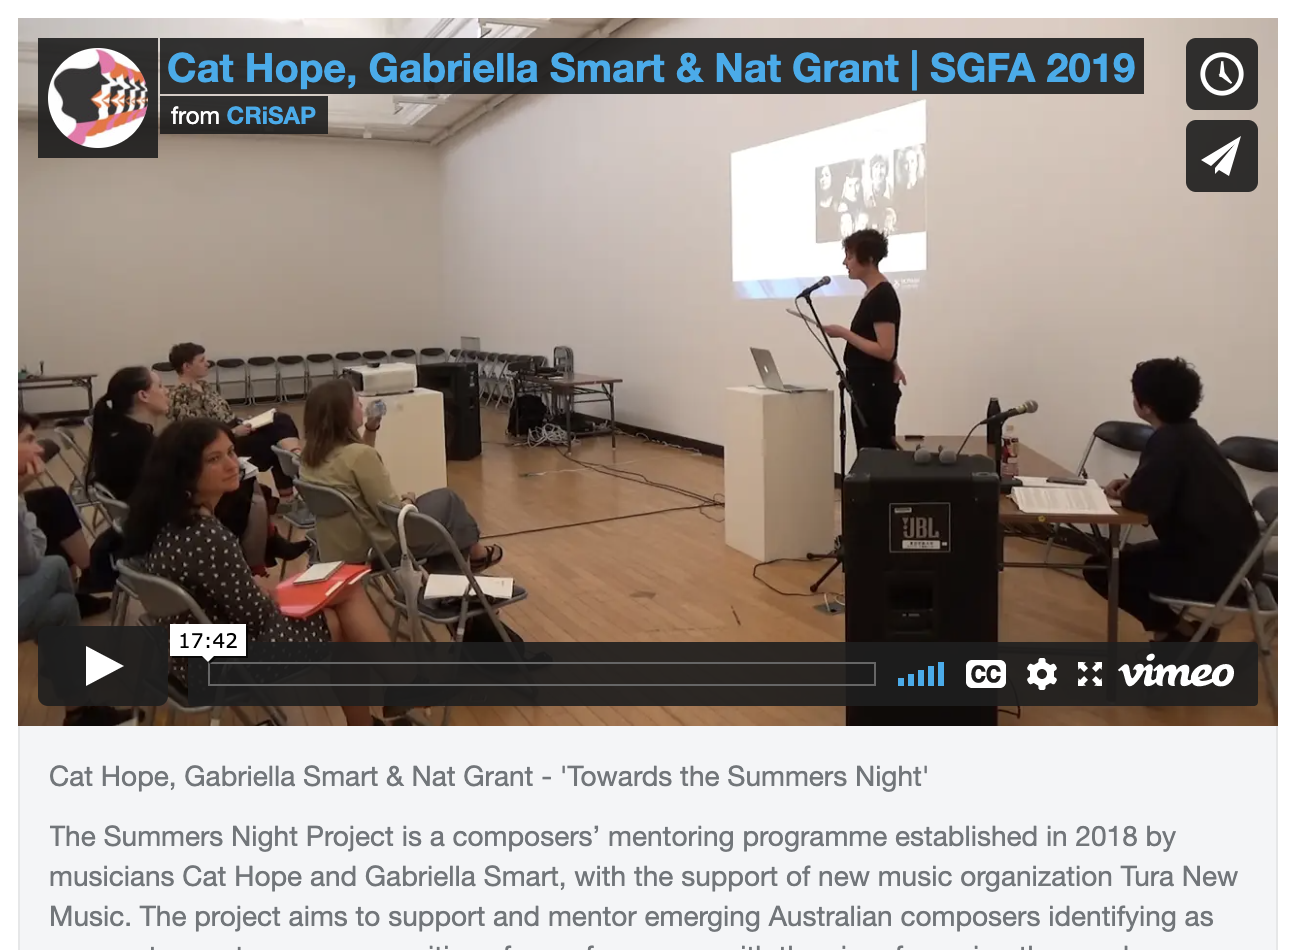 Vimeo screen shot of video 'Cat Hope, Gabriella Smart & Nat Grant - 'Towards the Summers Night'